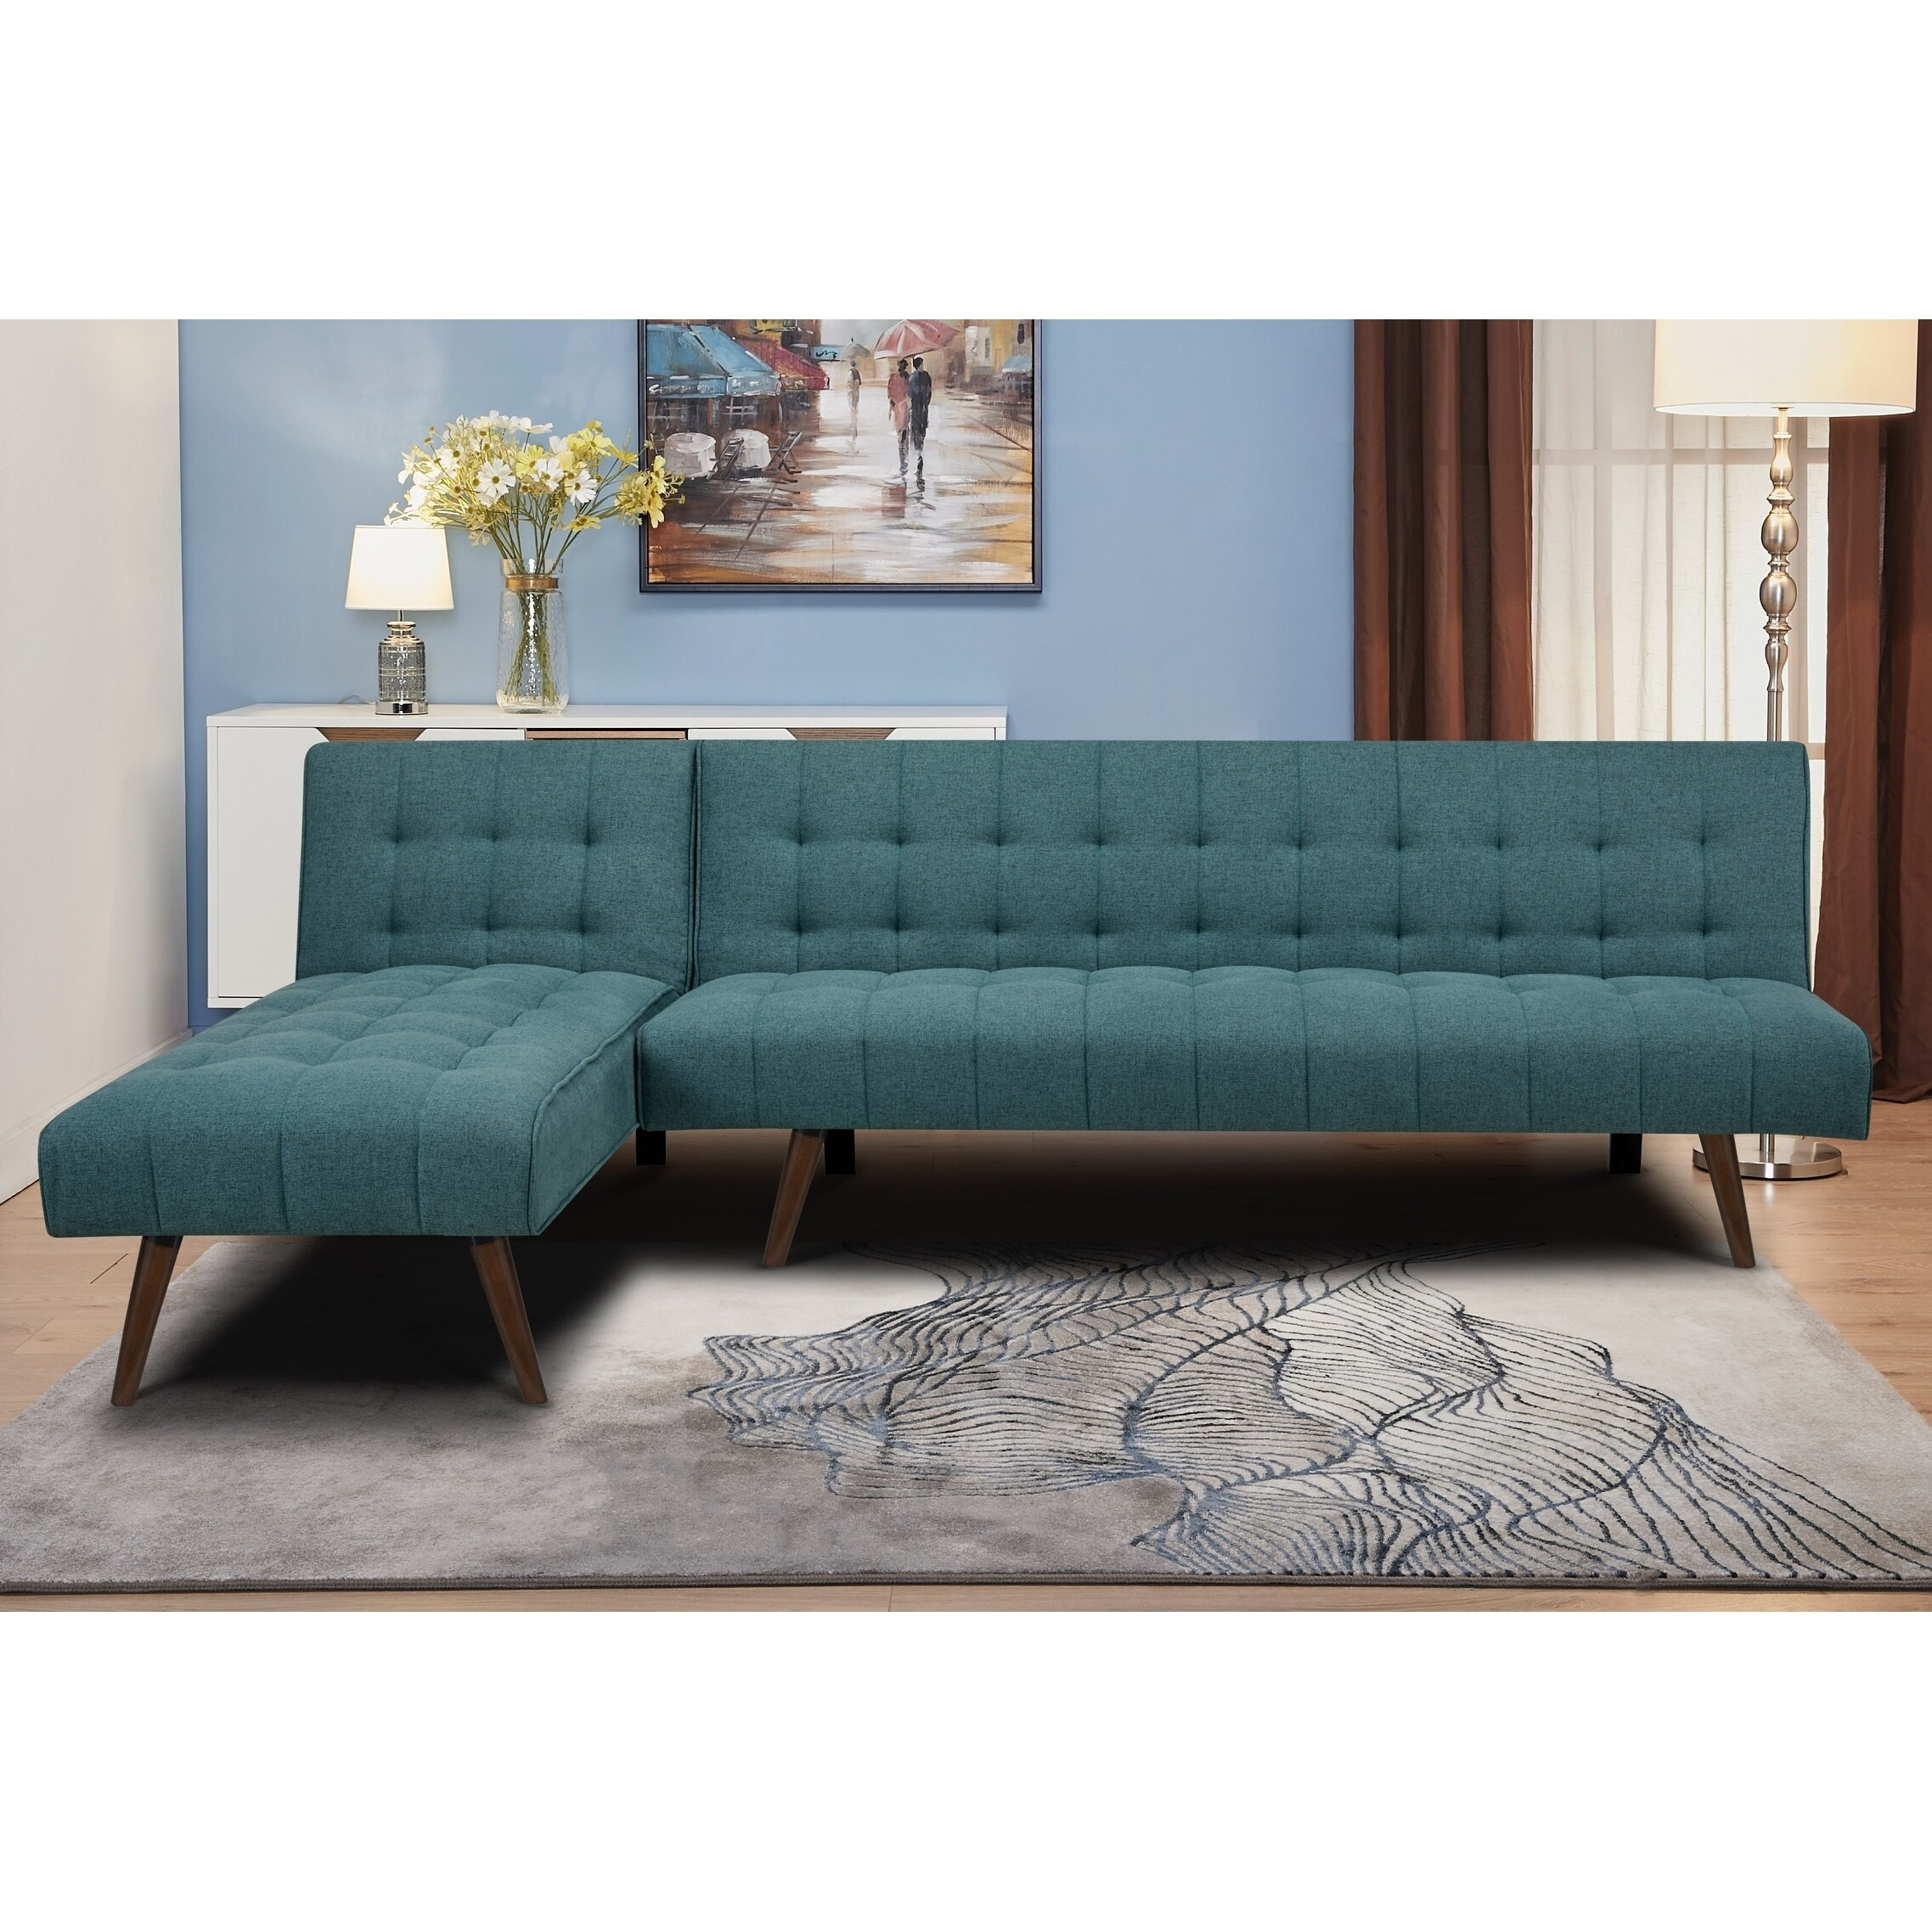 Admirable Shelton Marine Convertible Sectional Sofa Bed Evergreenethics Interior Chair Design Evergreenethicsorg